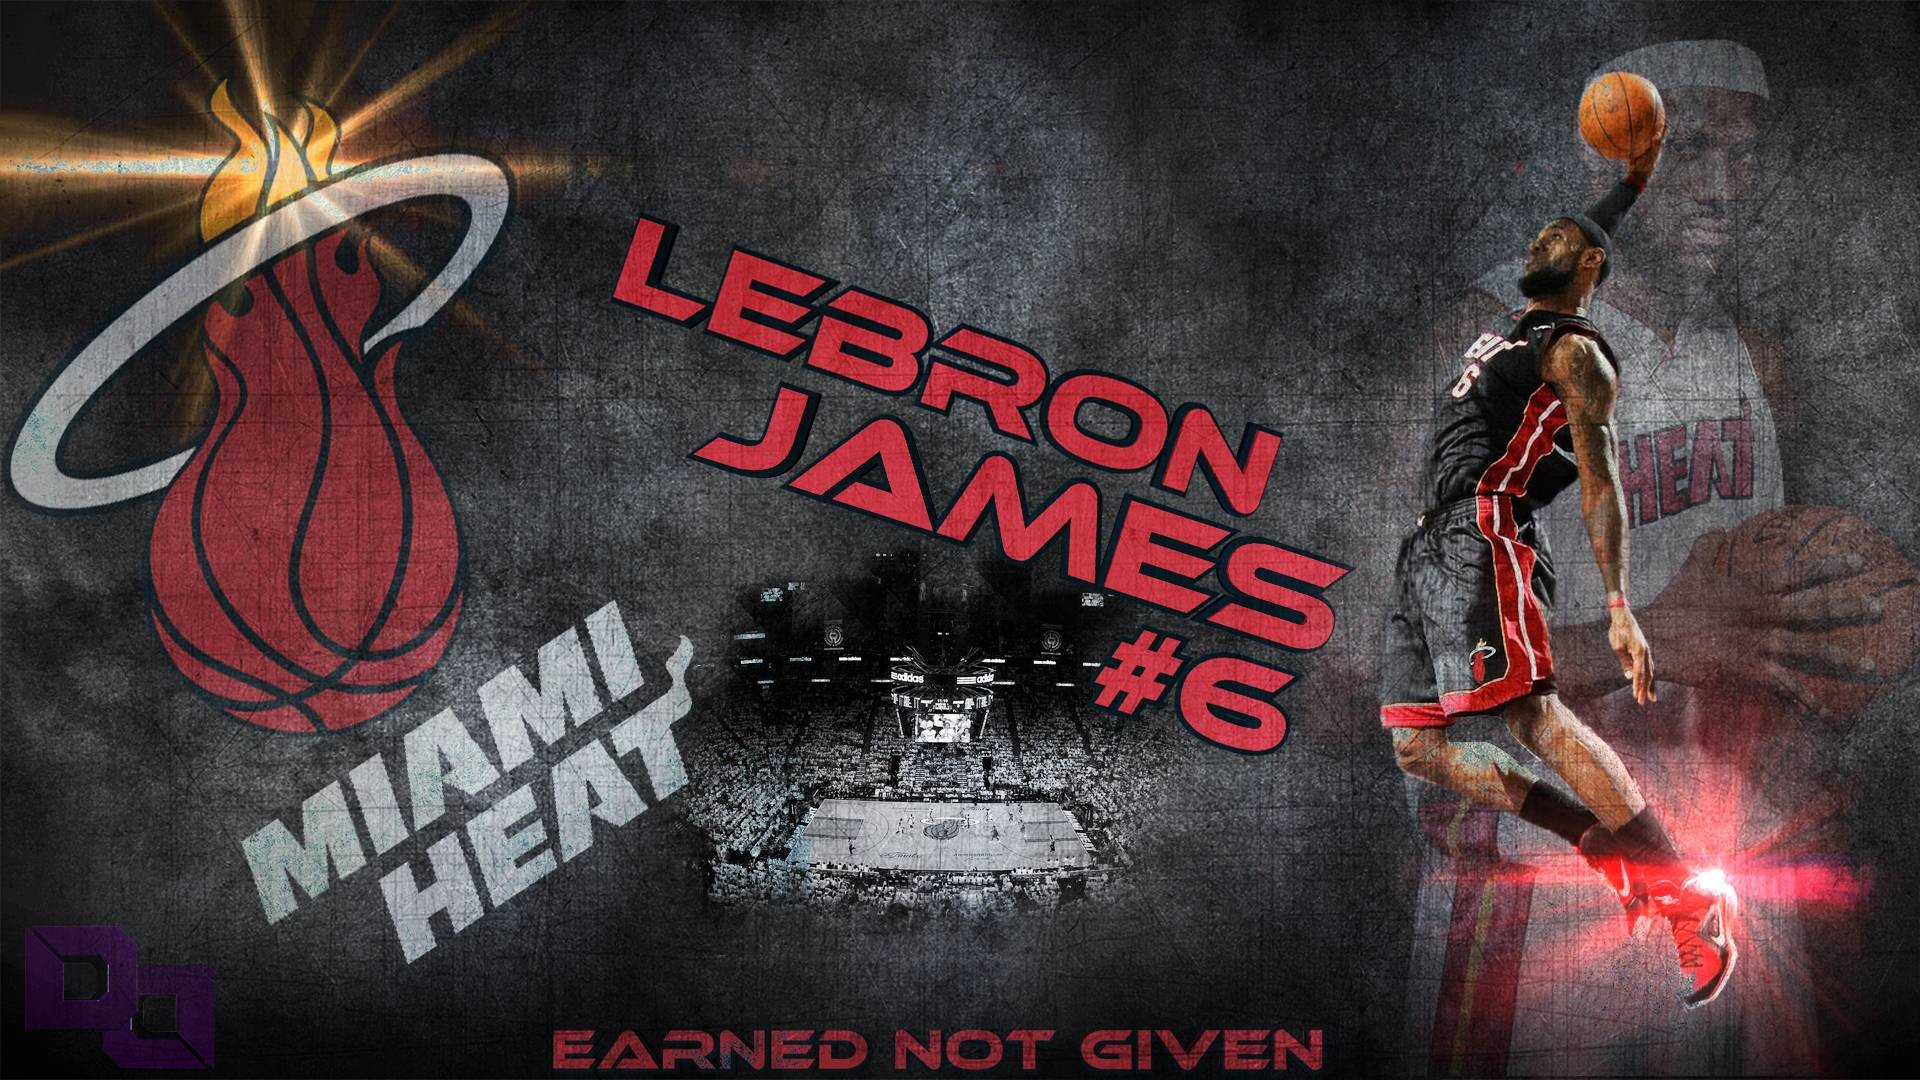 1920x1080 LeBron James Dunk Miami Heat Wallpaper Id #6462 | Frenzia.